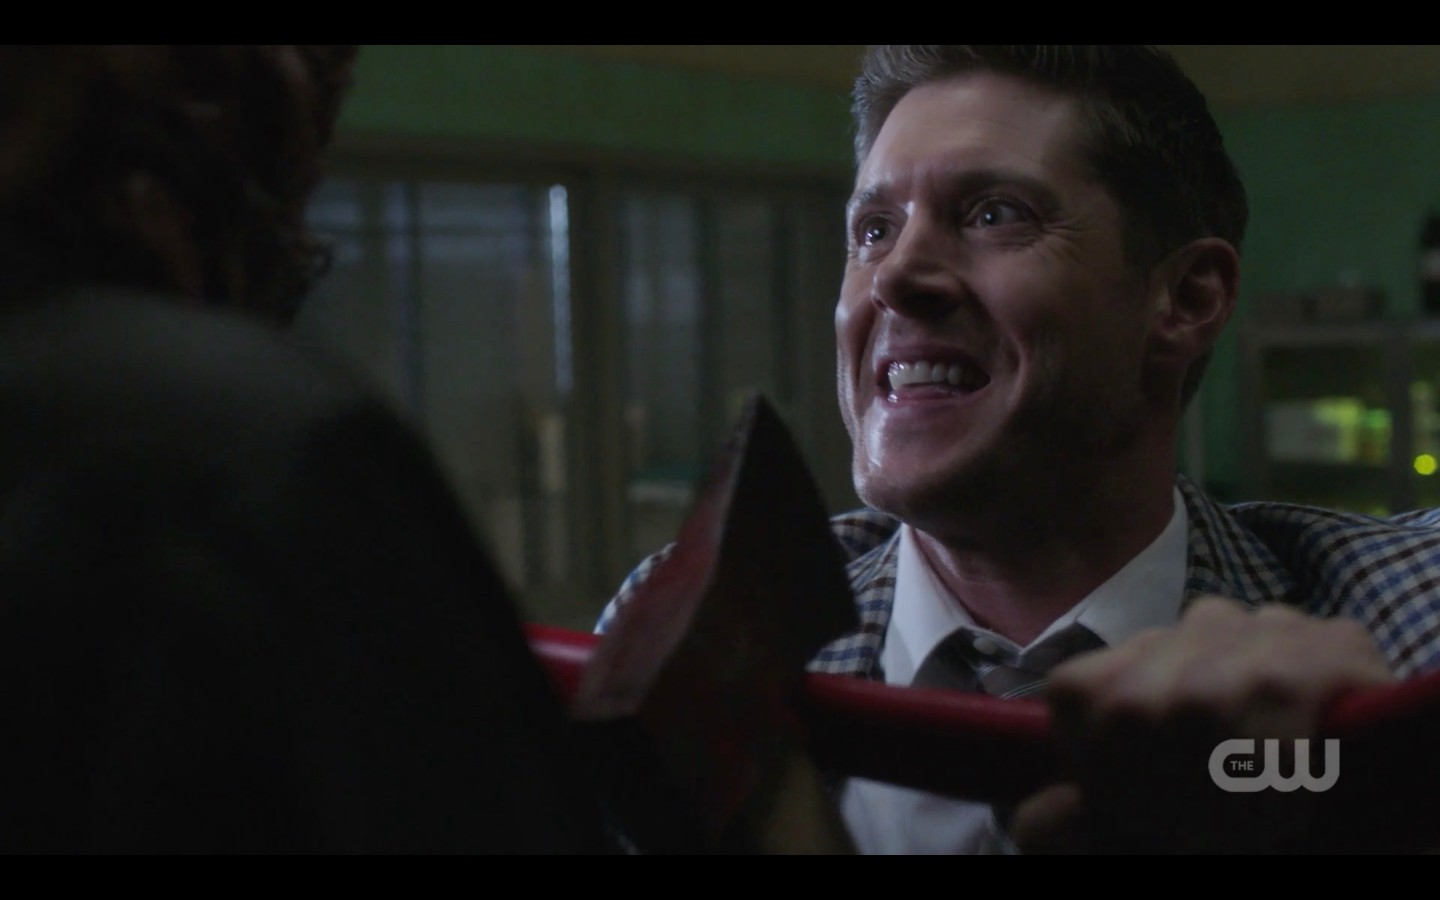 dean winchester fighting hatchetman i was kinda hoping youd say that spn